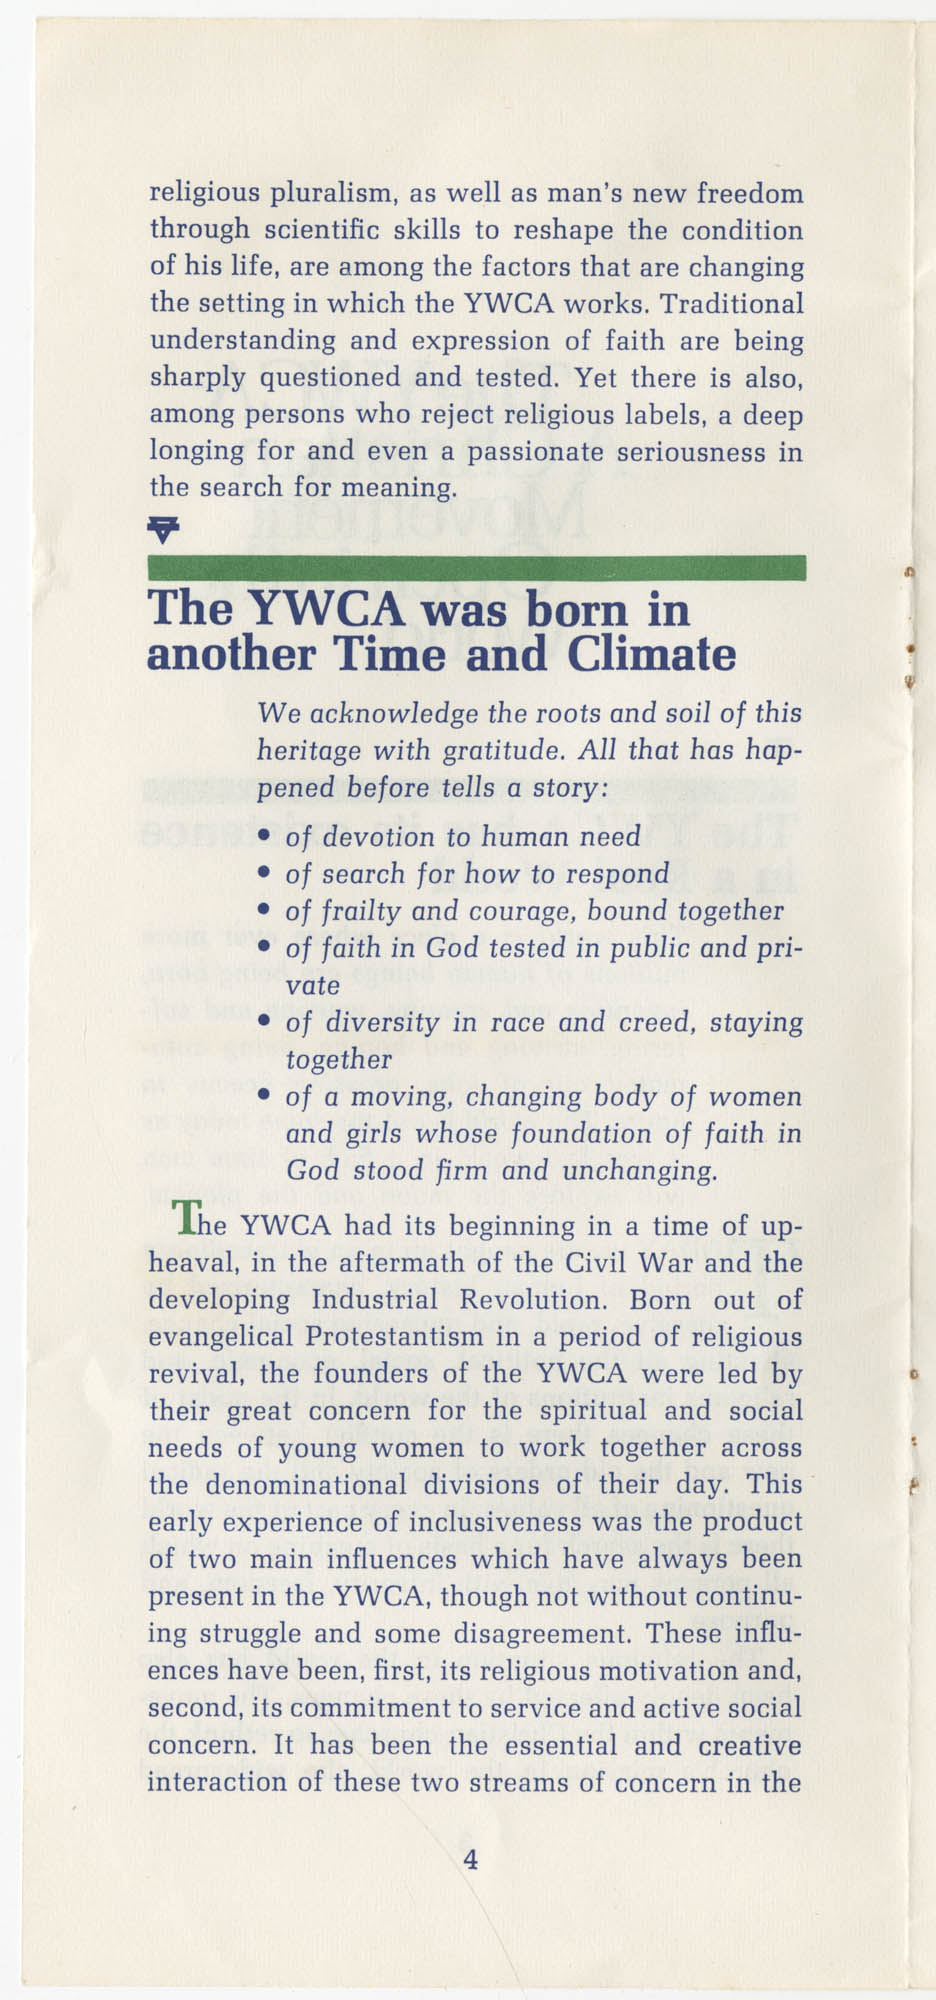 The Y.W.C.A.: A Christian Movement Open to the World, Page 4